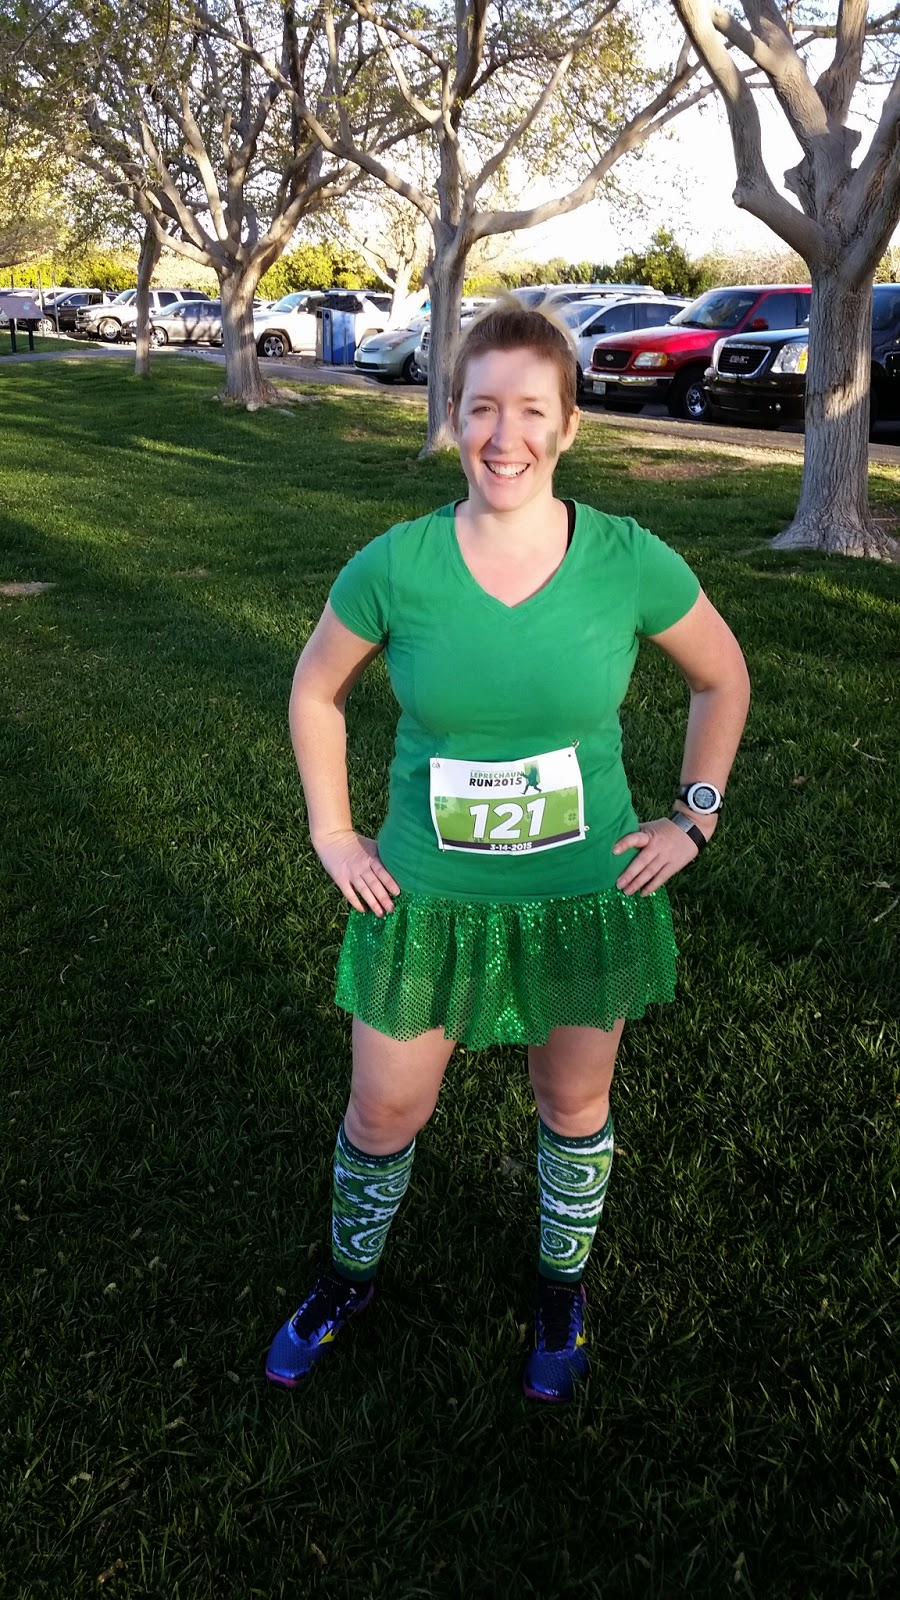 Pre-race at the Catch the Leprechaun 5k